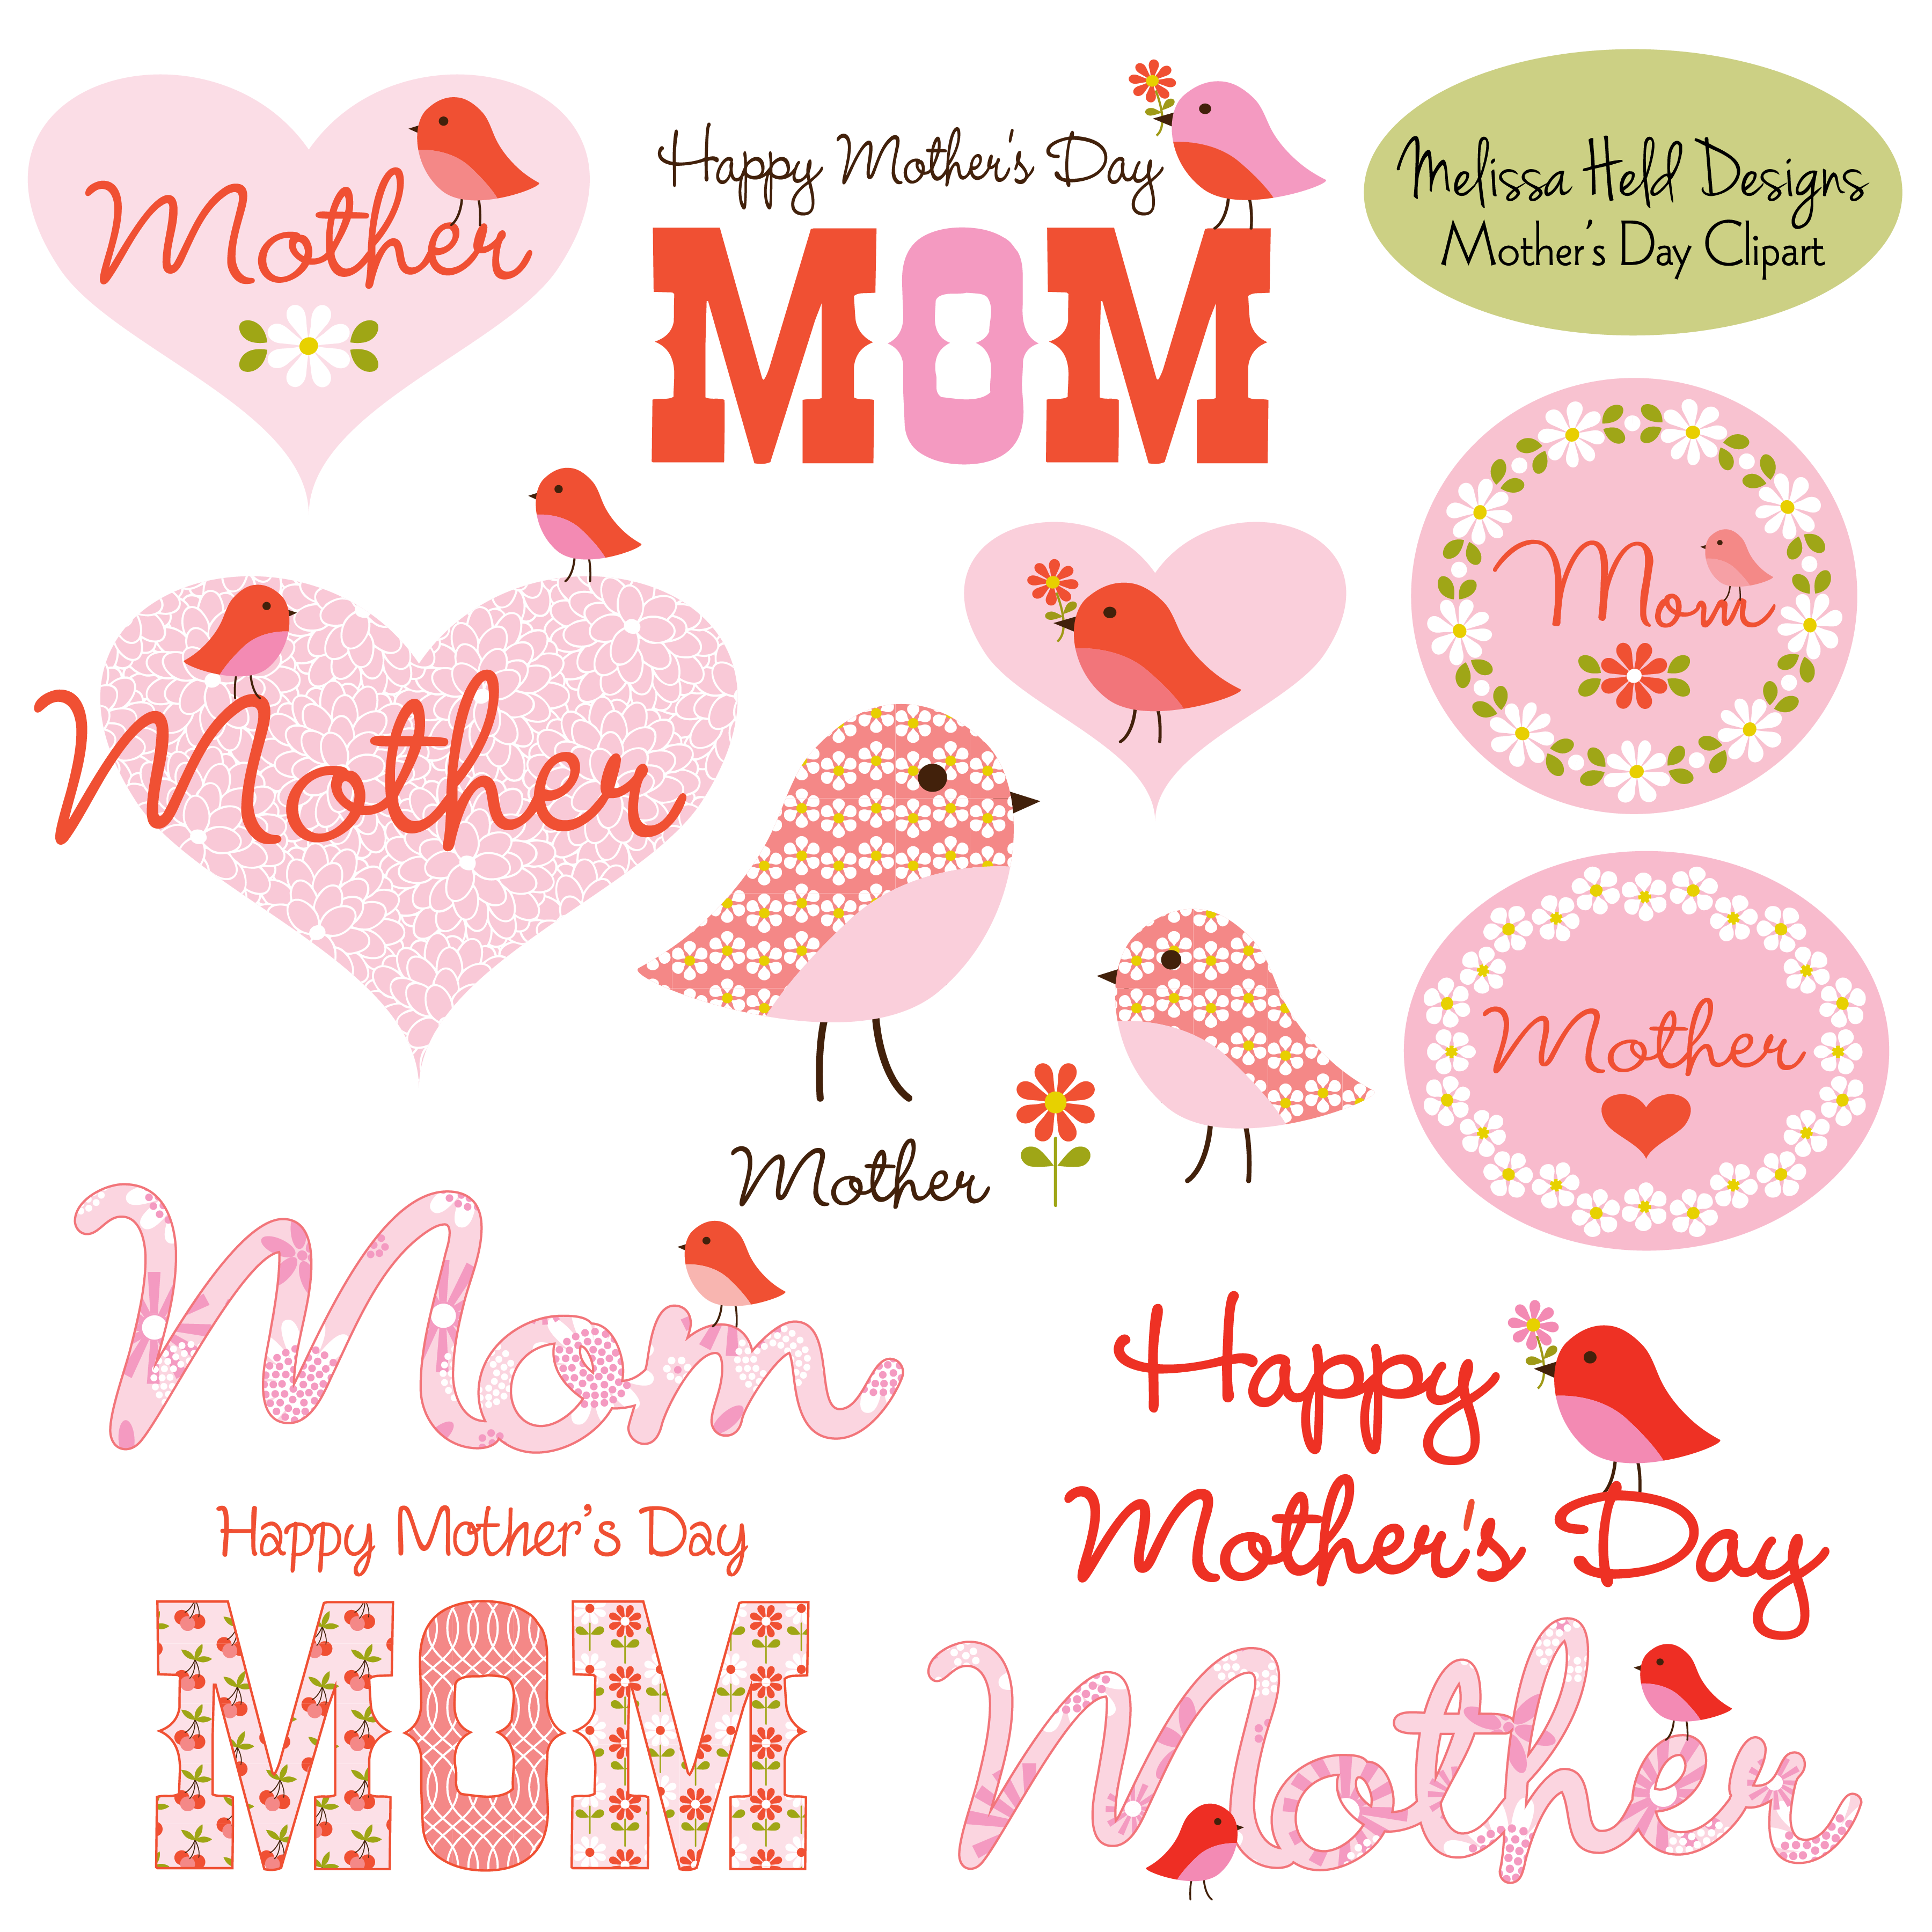 small resolution of happy mother day quotes happy mothers day images mother day gifts mothers day